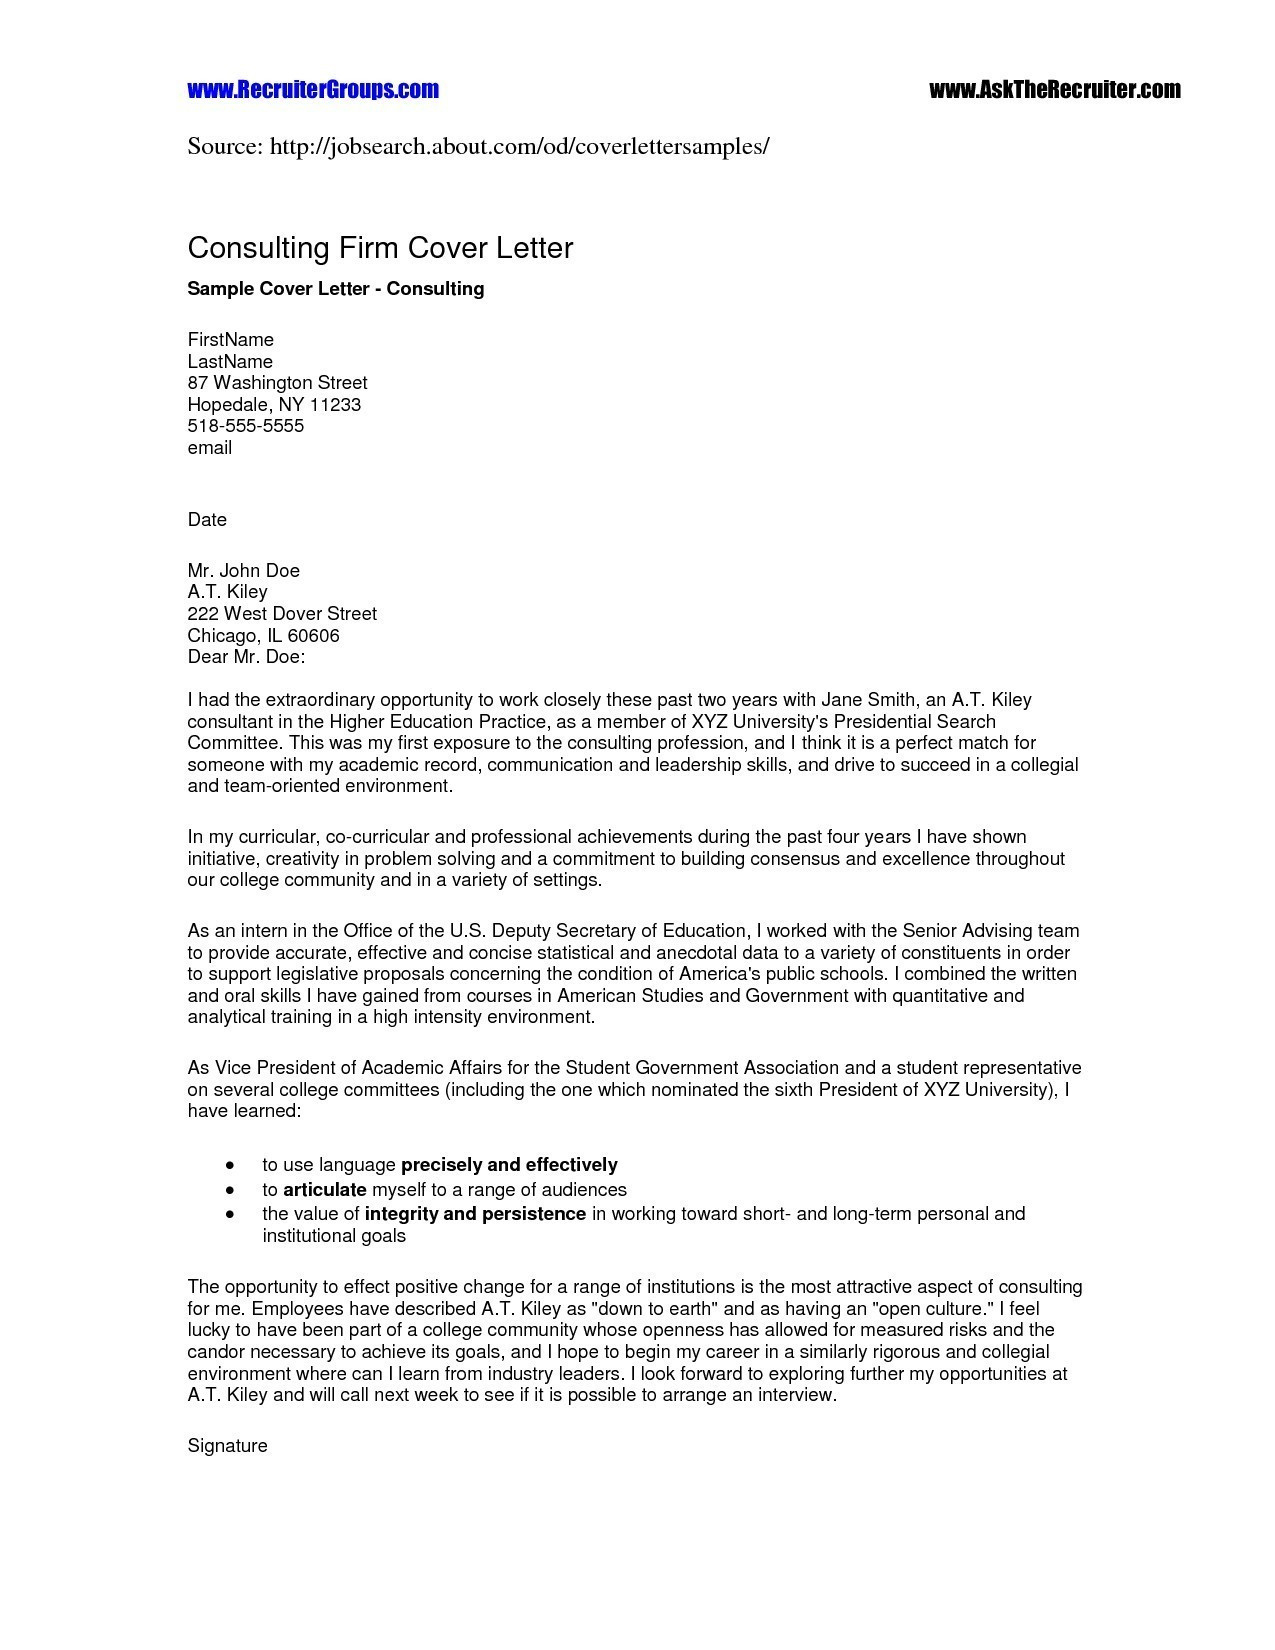 estate planning letter of instruction template example-Estate Planning Letter Instruction Template Best Short Cover Letter Template Samples apextechnews 14-t